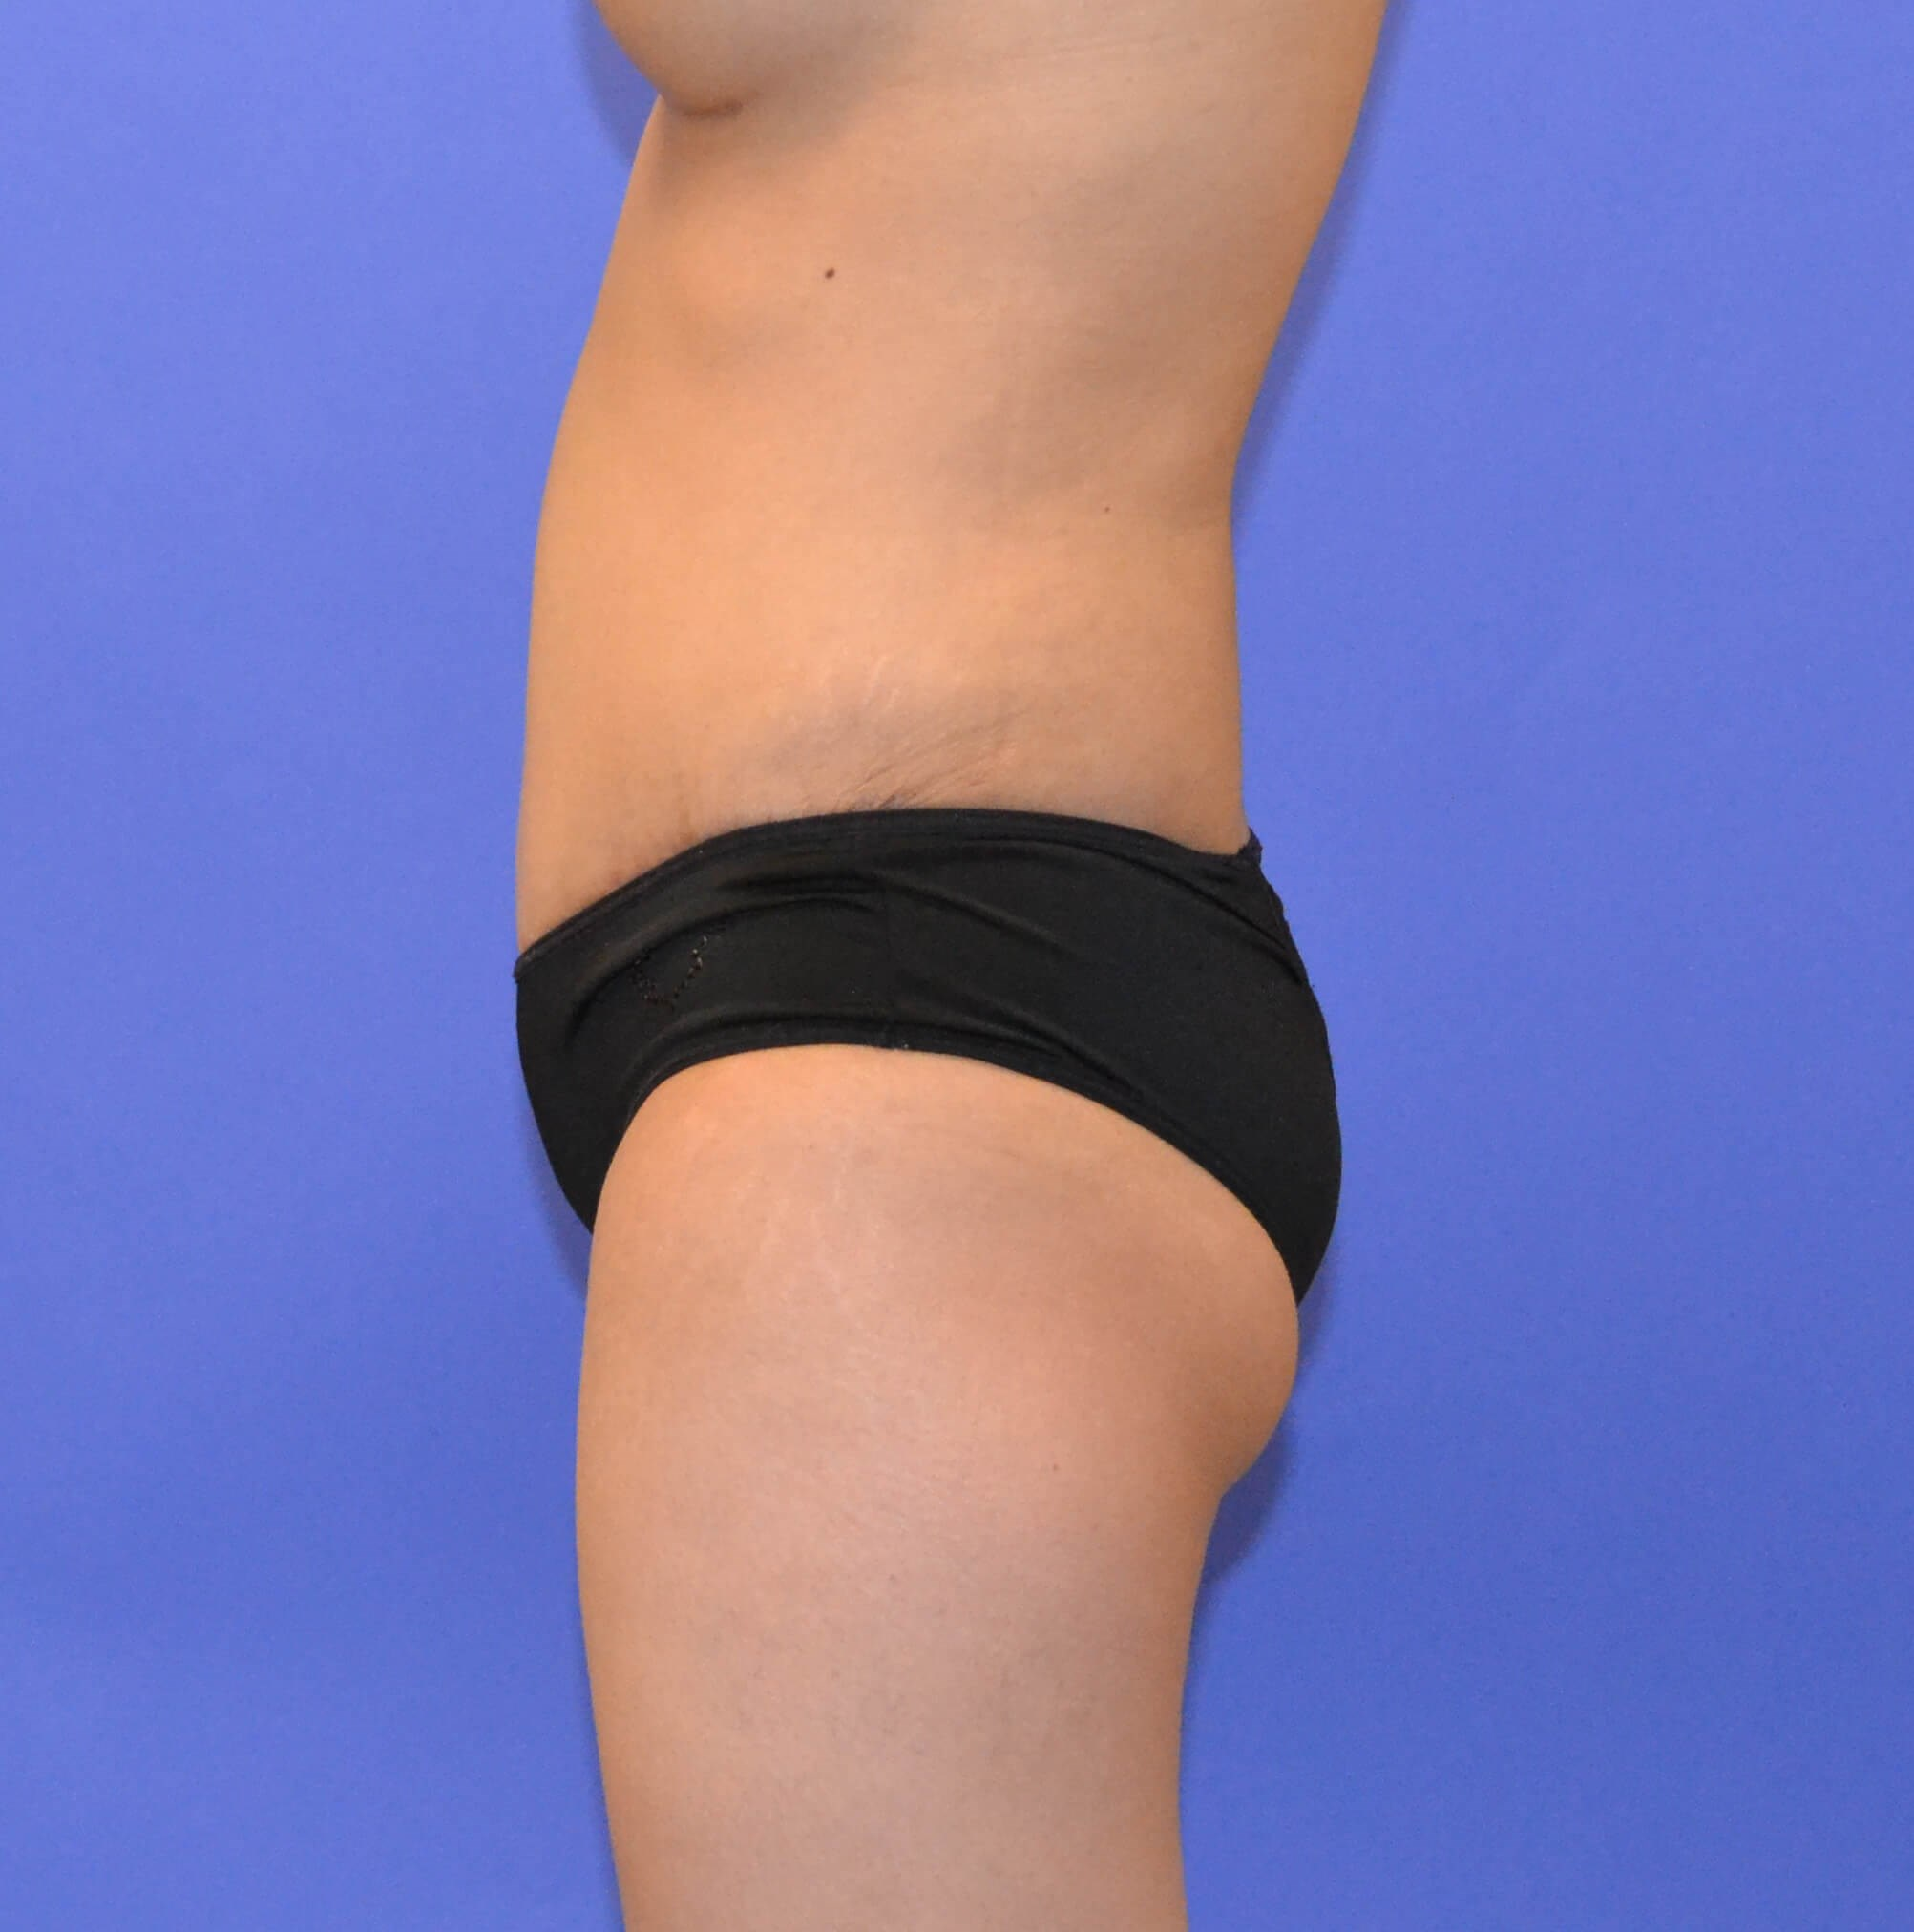 Tummy Tuck and Liposuction After